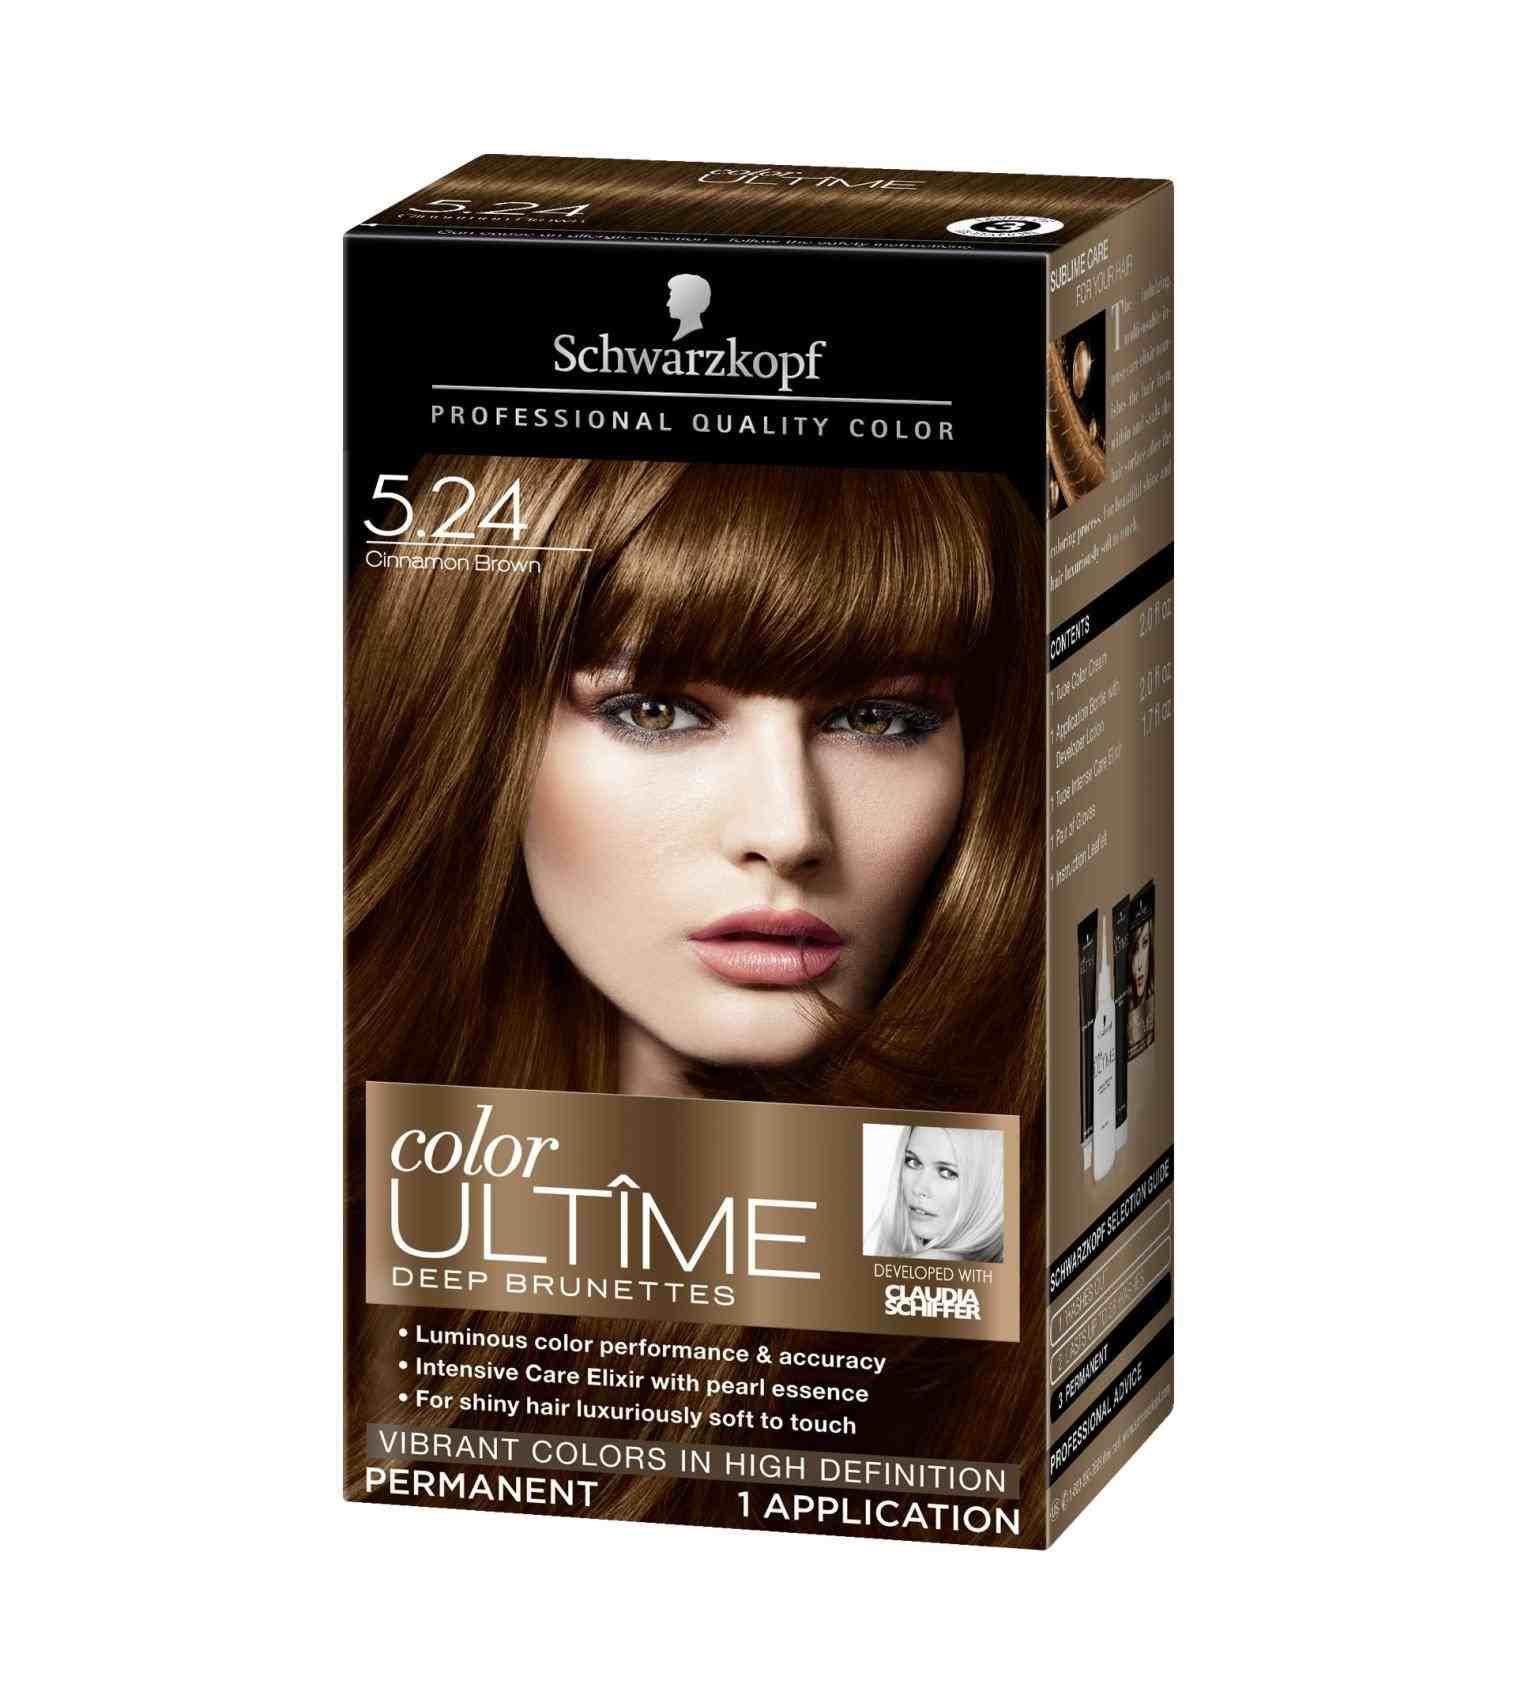 Balayagehair Club Nbspthis Website Is For Sale Nbspbalayagehair Resources And Information Schwarzkopf Color Ultime Schwarzkopf Hair Color Schwarzkopf Color